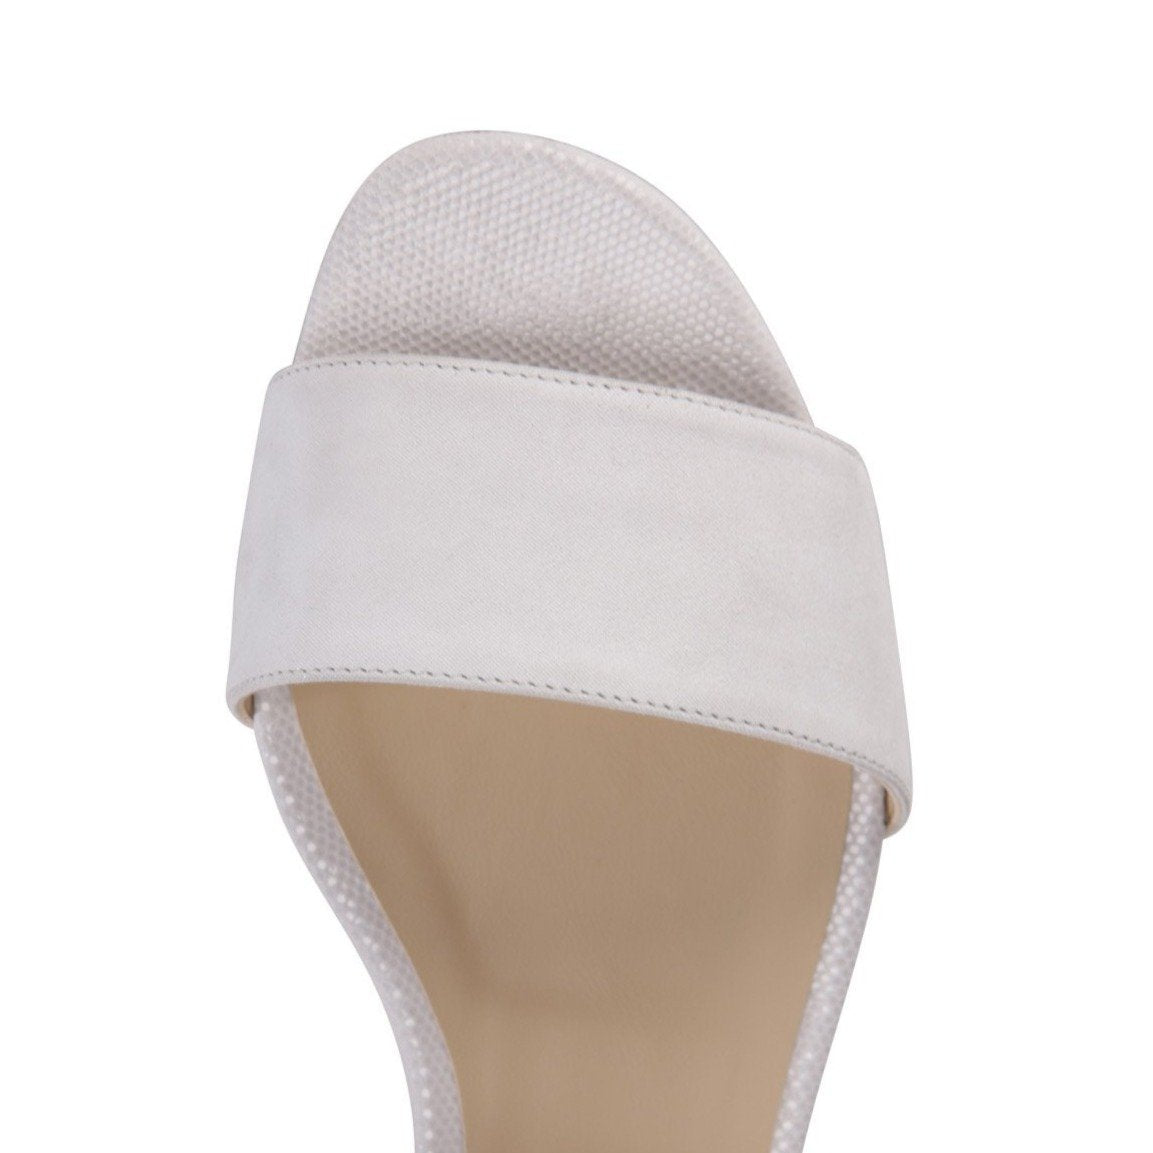 LUCCA - Hydra Bianco + Lady, VIAJIYU - Women's Hand Made Sustainable Luxury Shoes. Made in Italy. Made to Order.